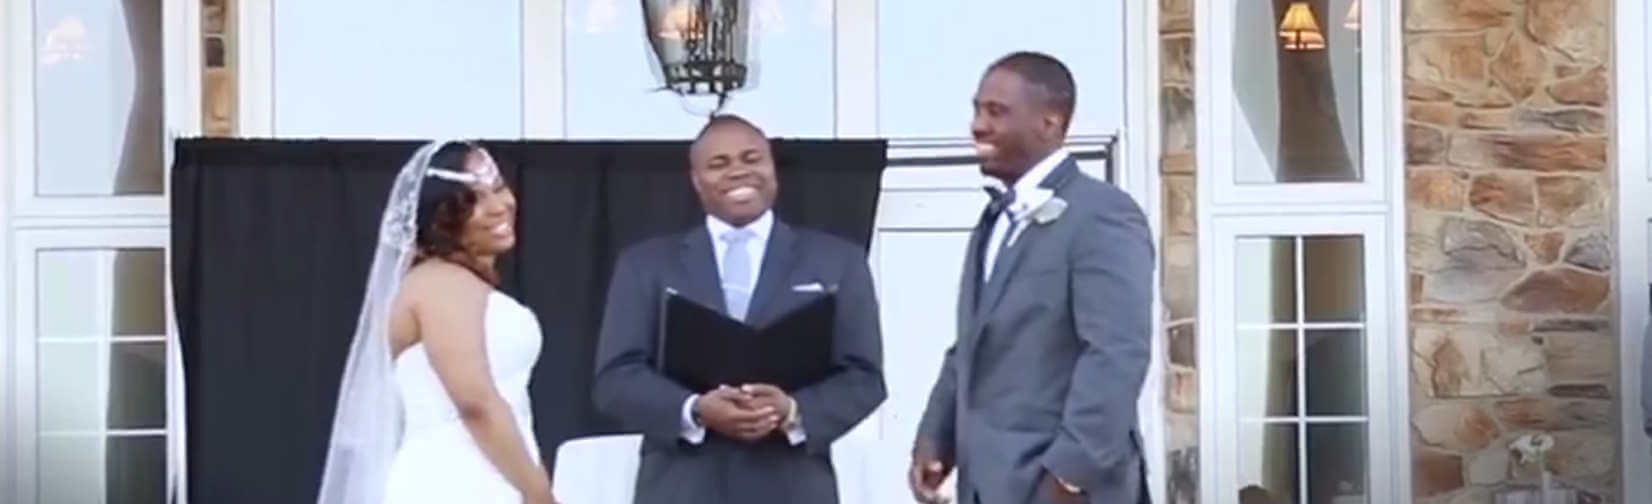 Groom performs his Wedding VOWS as a RAP